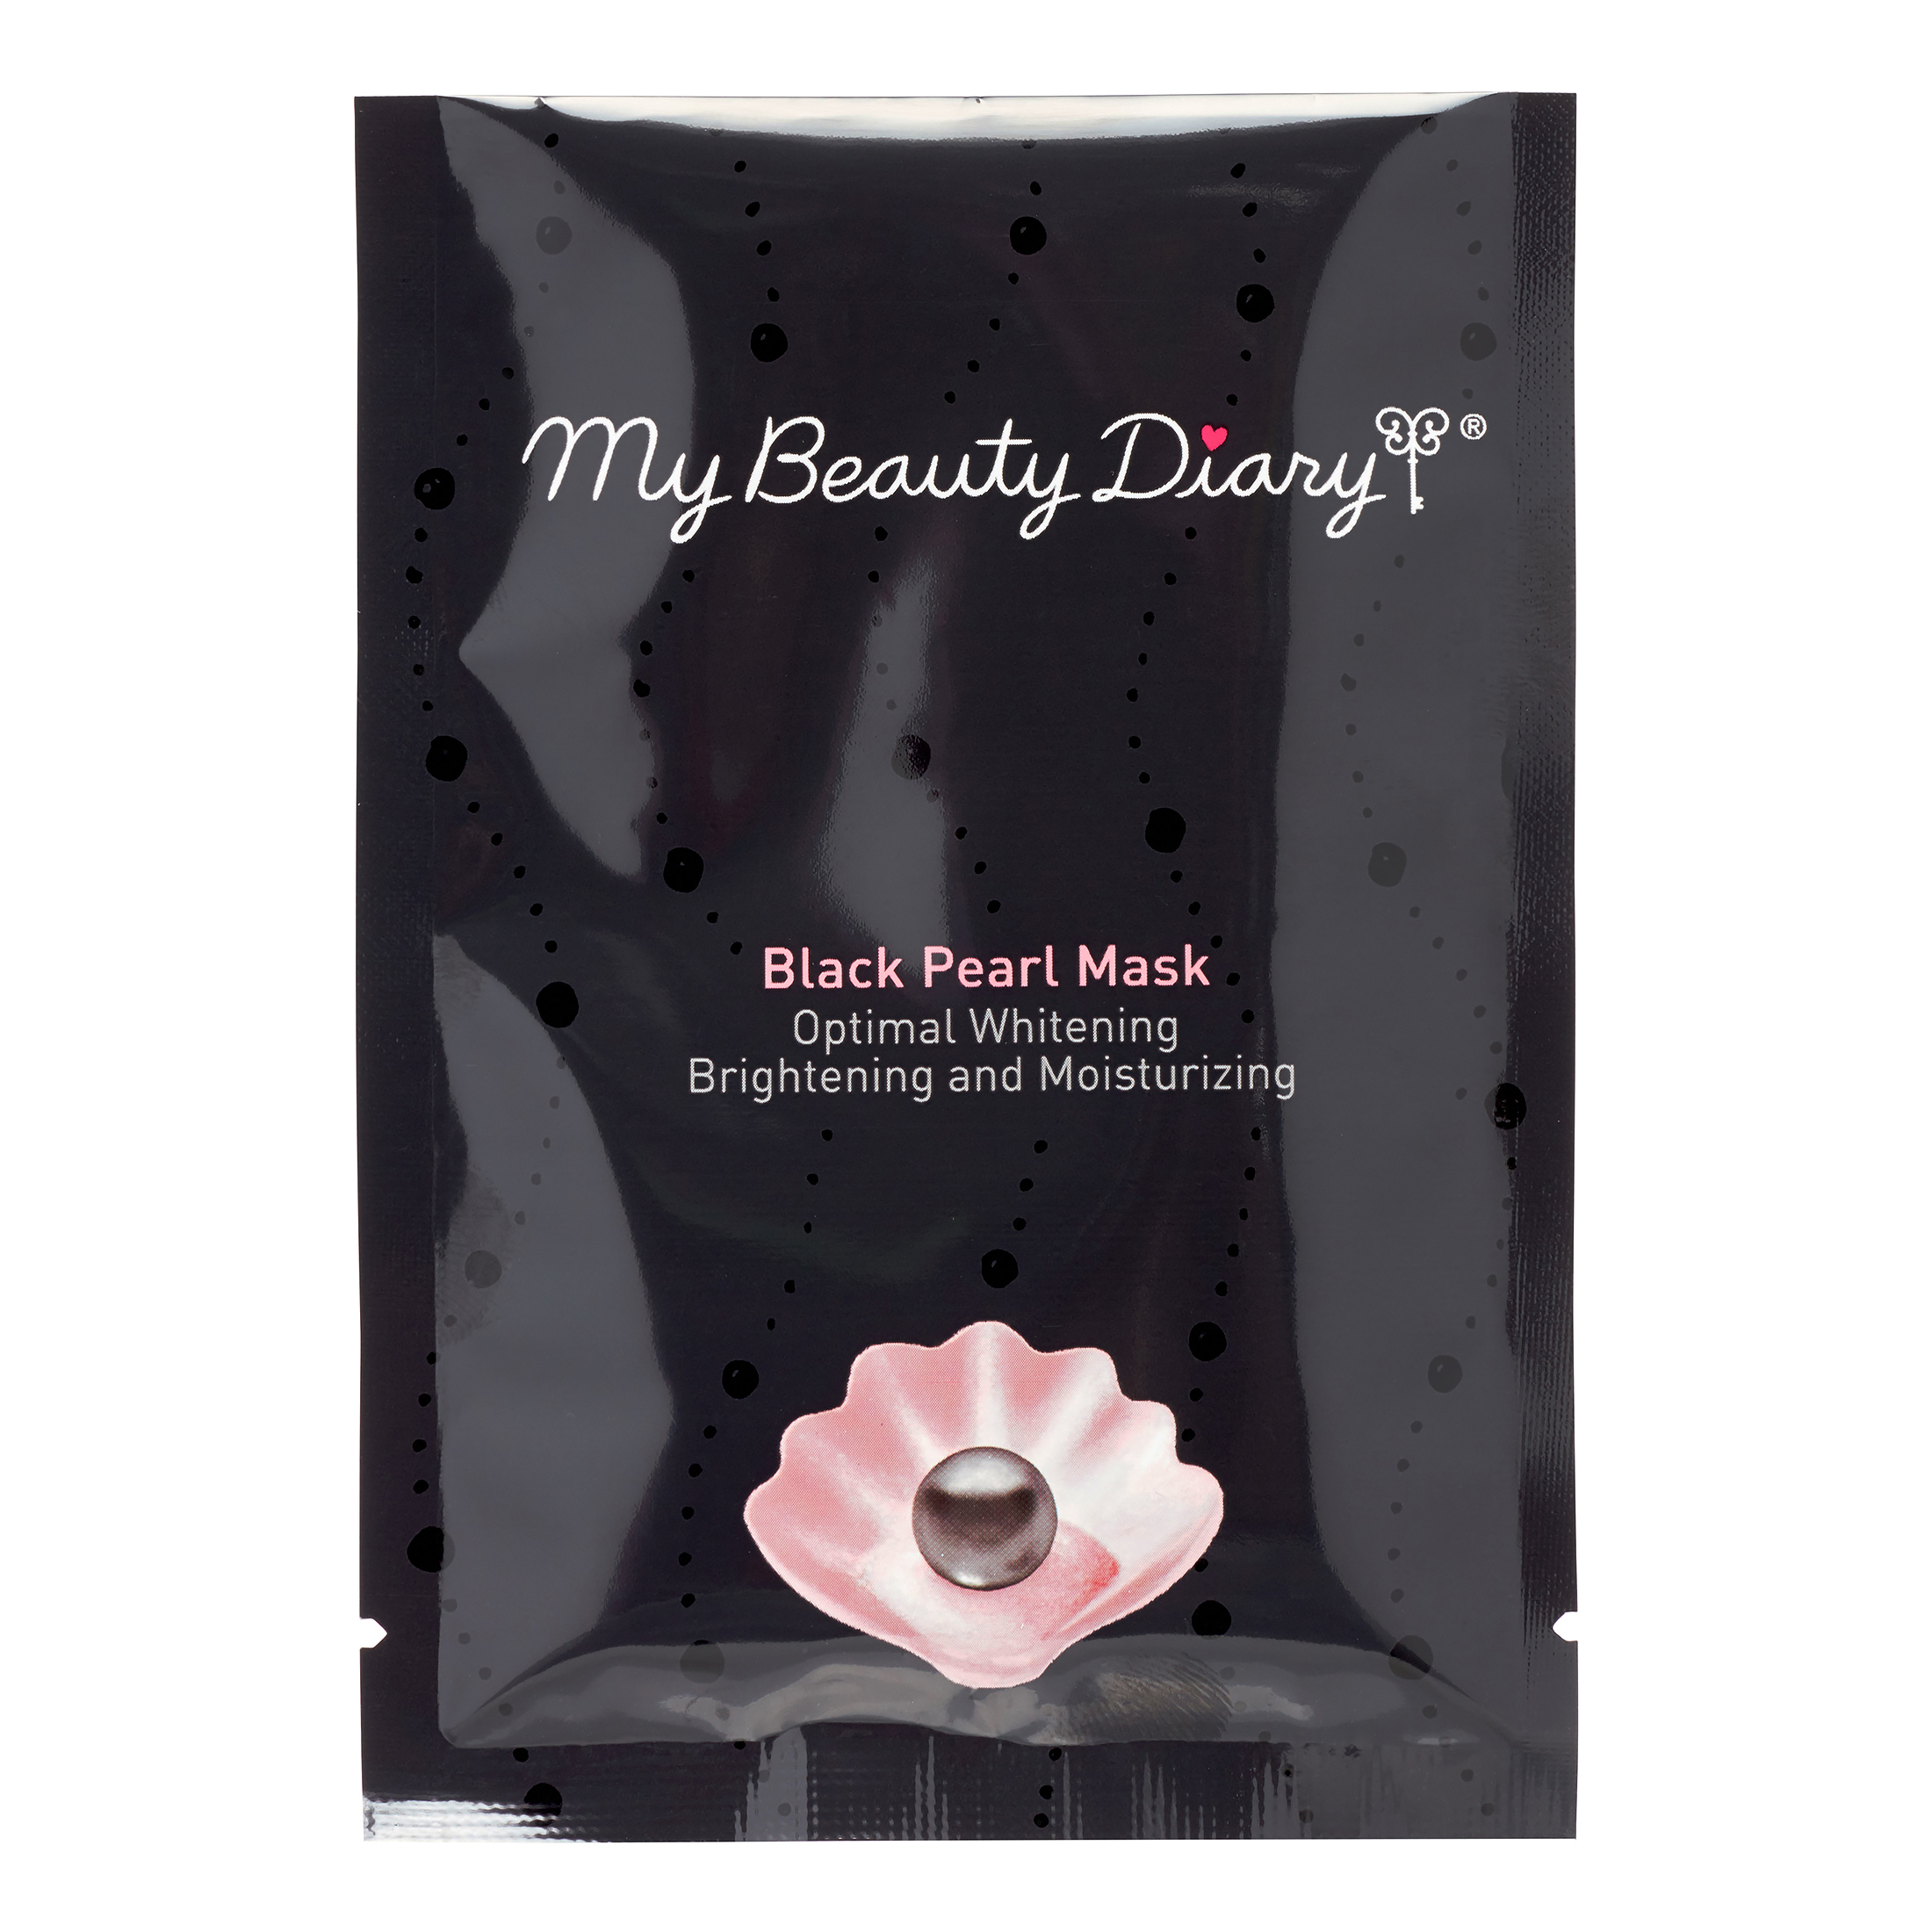 My Beauty Diary Black Pearl Face Mask, 10 count